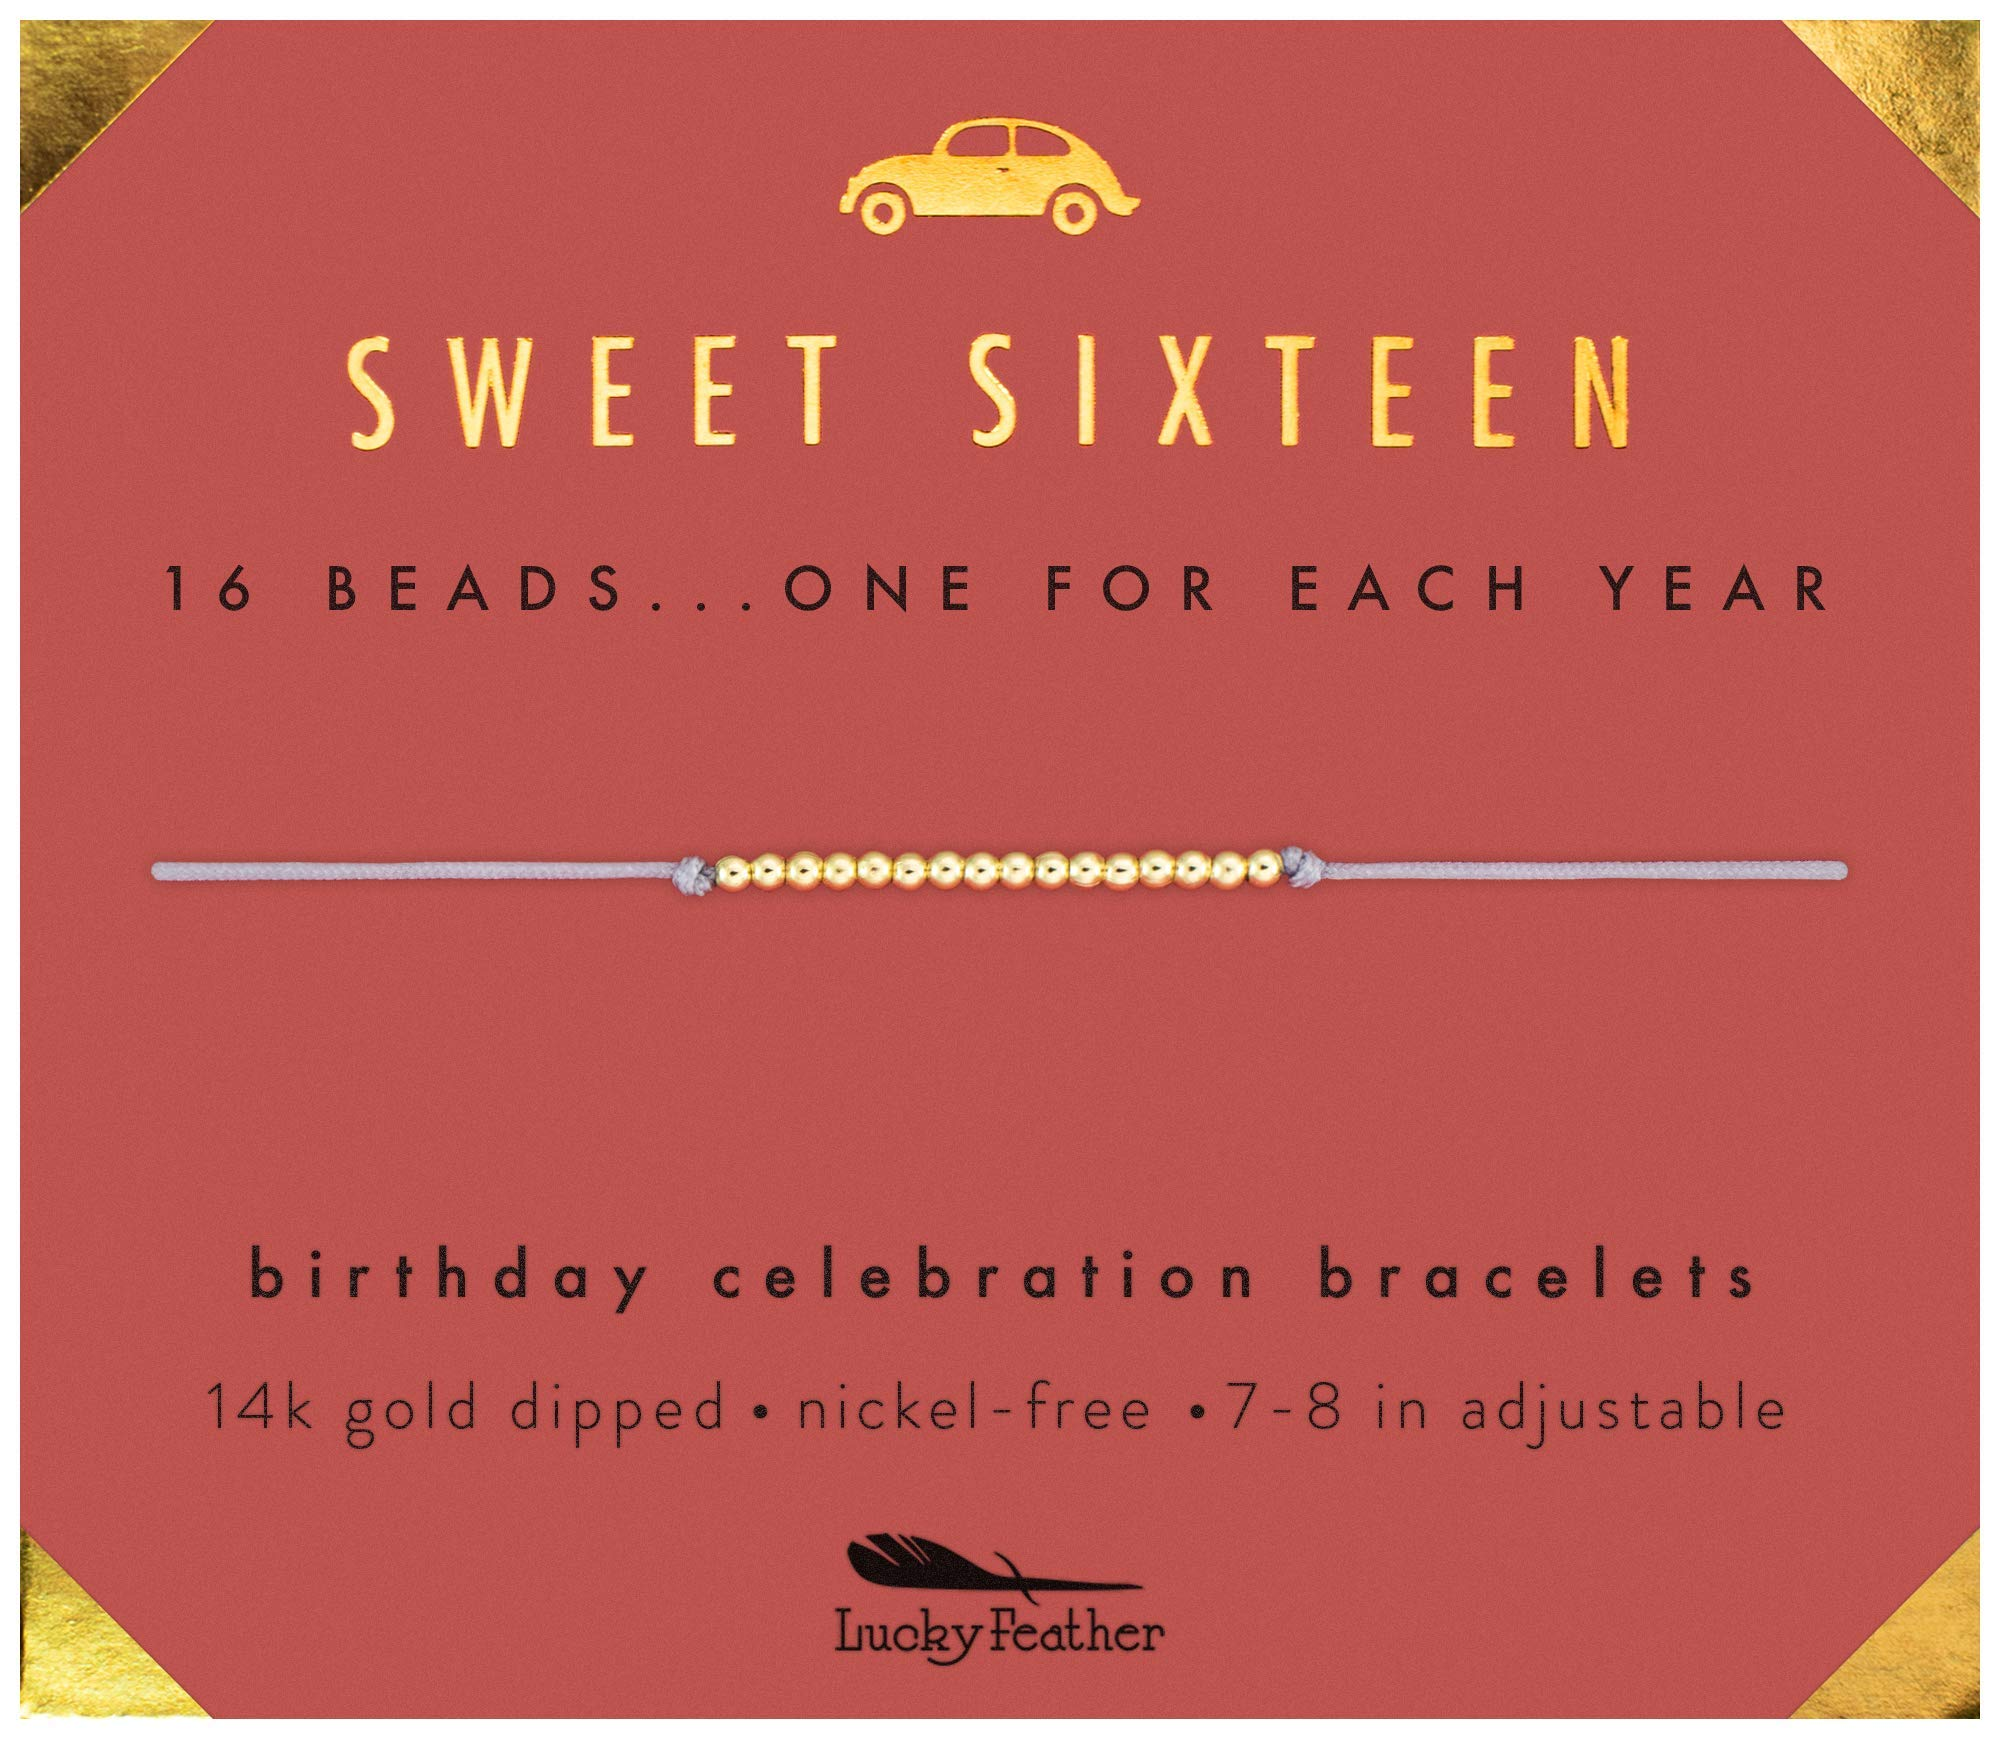 Lucky Feather Sweet 16 Gold Tone Birthday Bracelet Gift for 16 Year Old Girls with 14K  sc 1 st  Amazon.com & 16th Birthday Gift: Amazon.com